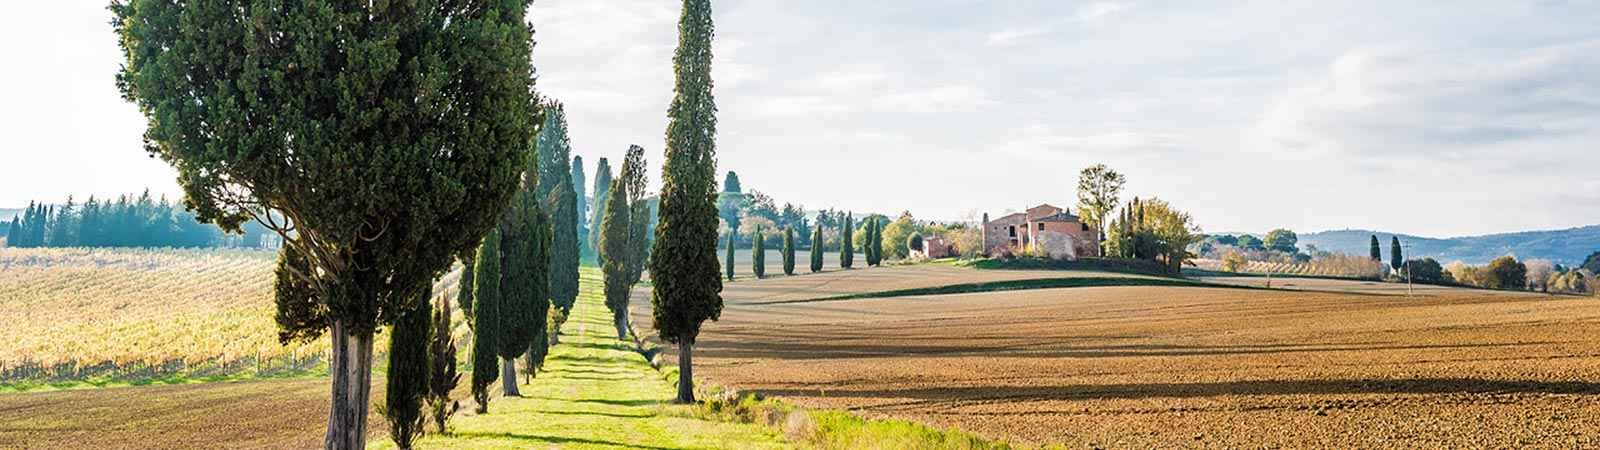 Experience the Heart of Tuscany on Italy's Camino to Rome